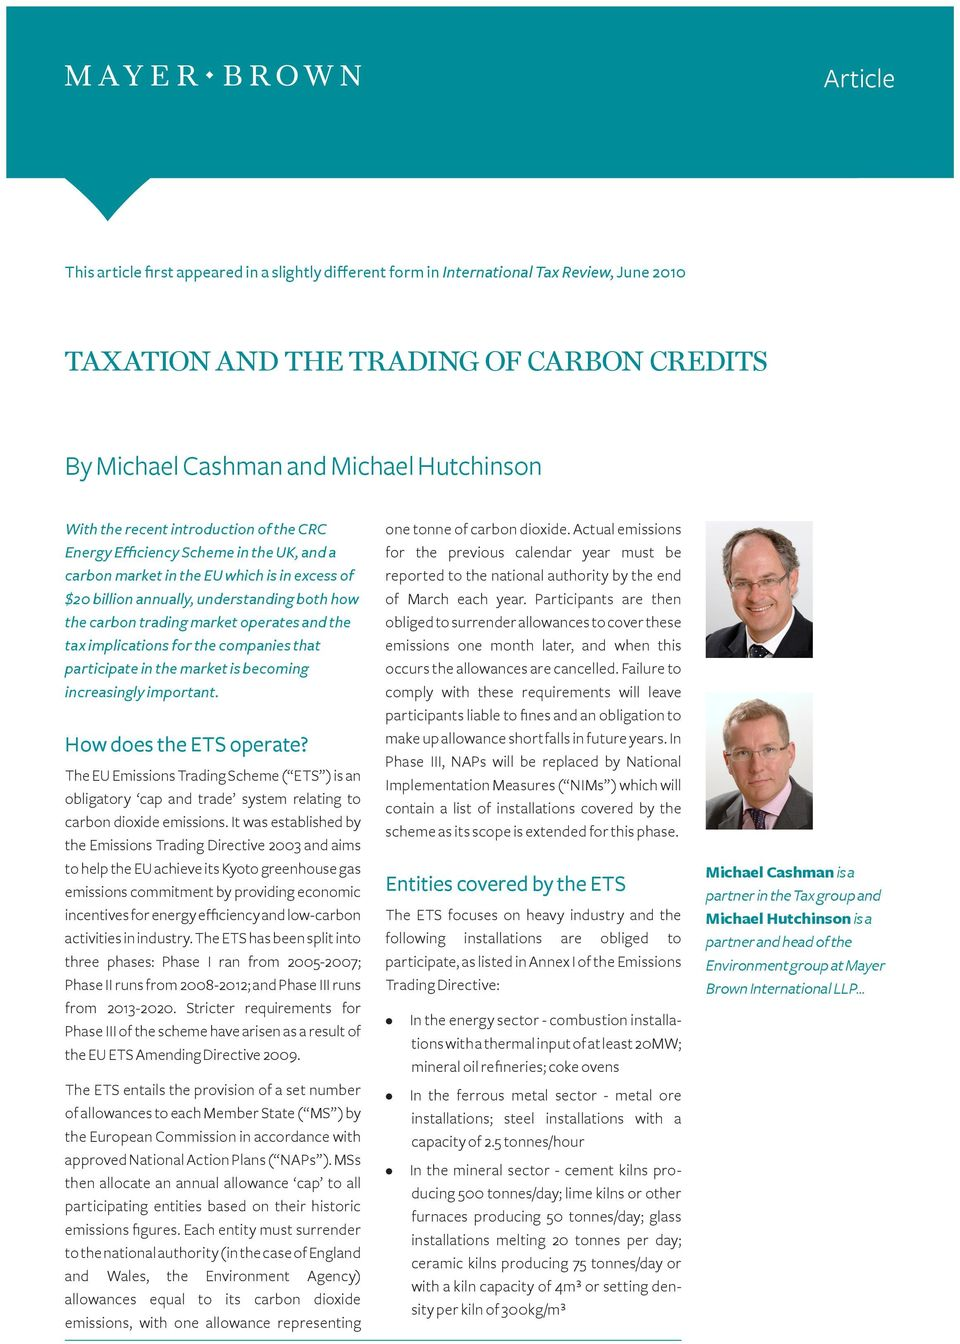 and the tax implications for the companies that participate in the market is becoming increasingly important. How does the ETS operate?